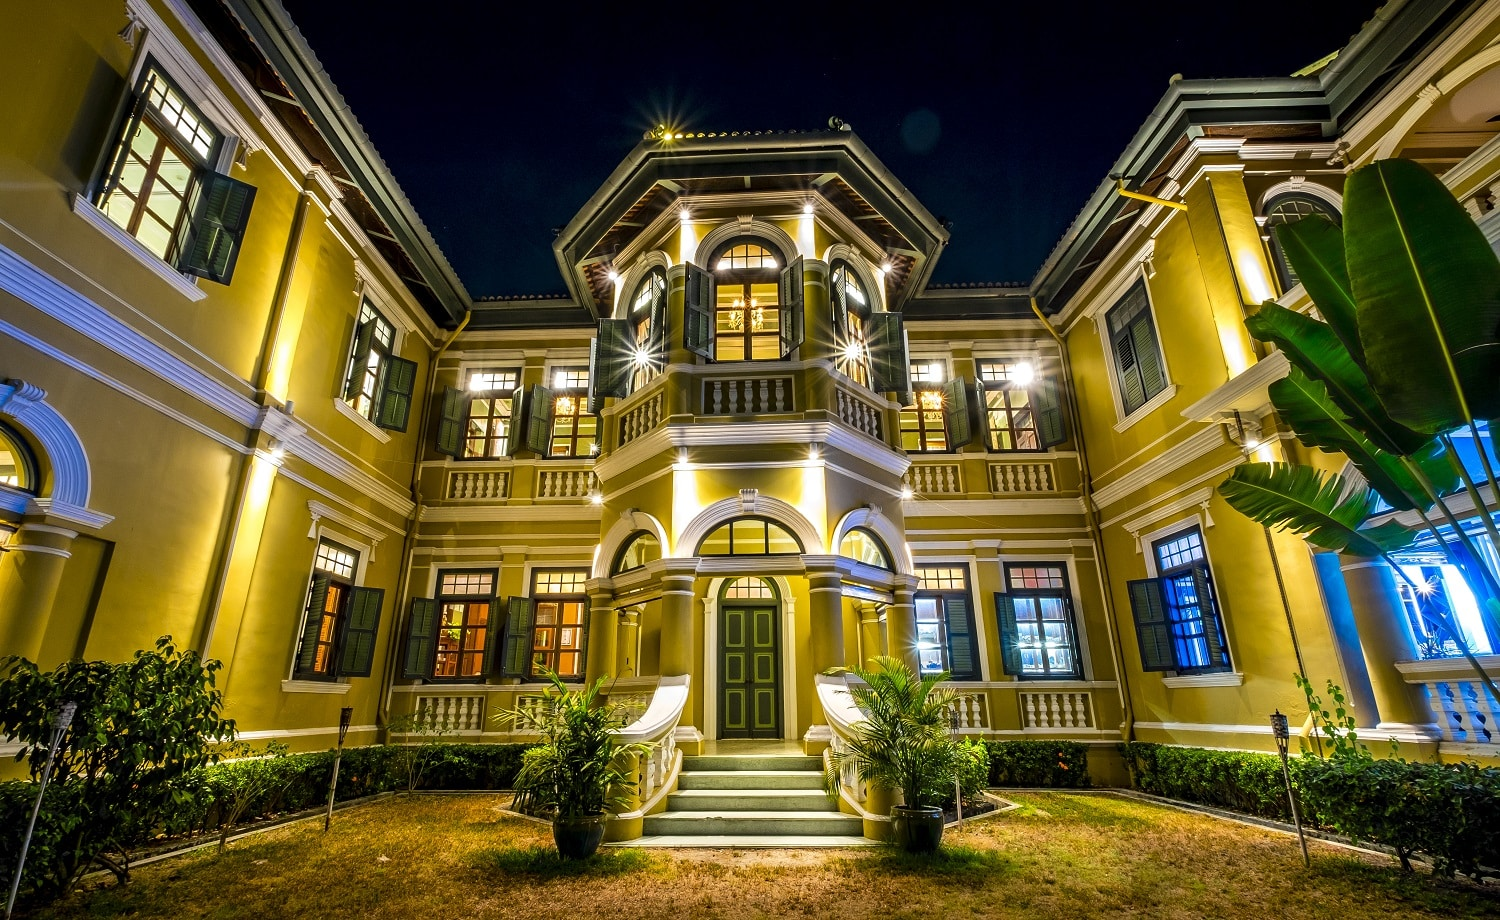 colonial style house in night scene